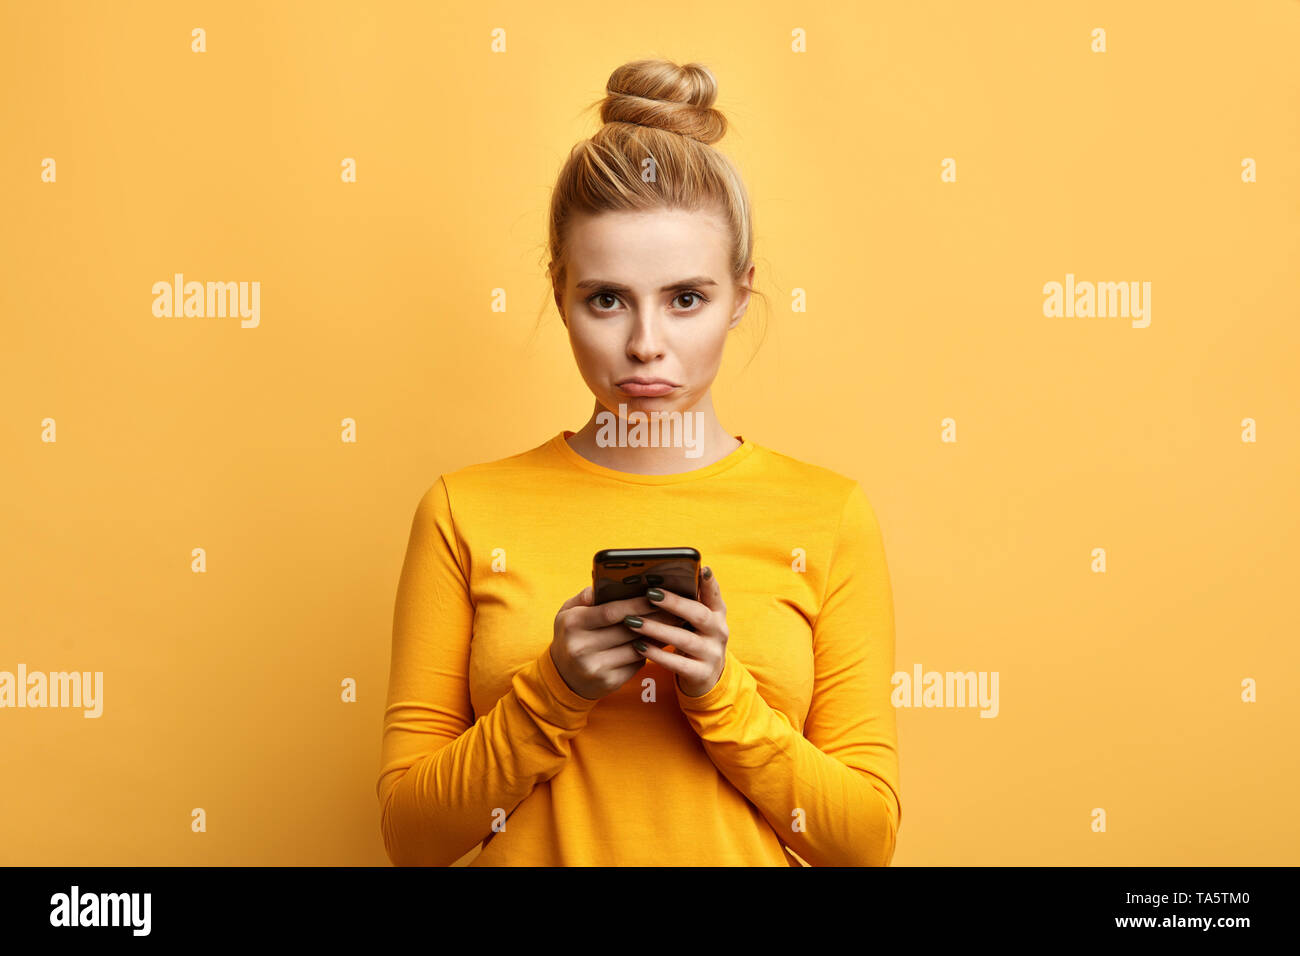 angry sad woman with hairbun annoyed by something while using phone, girl has received bad sms, text message isolated yellow background. emotion, reac - Stock Image